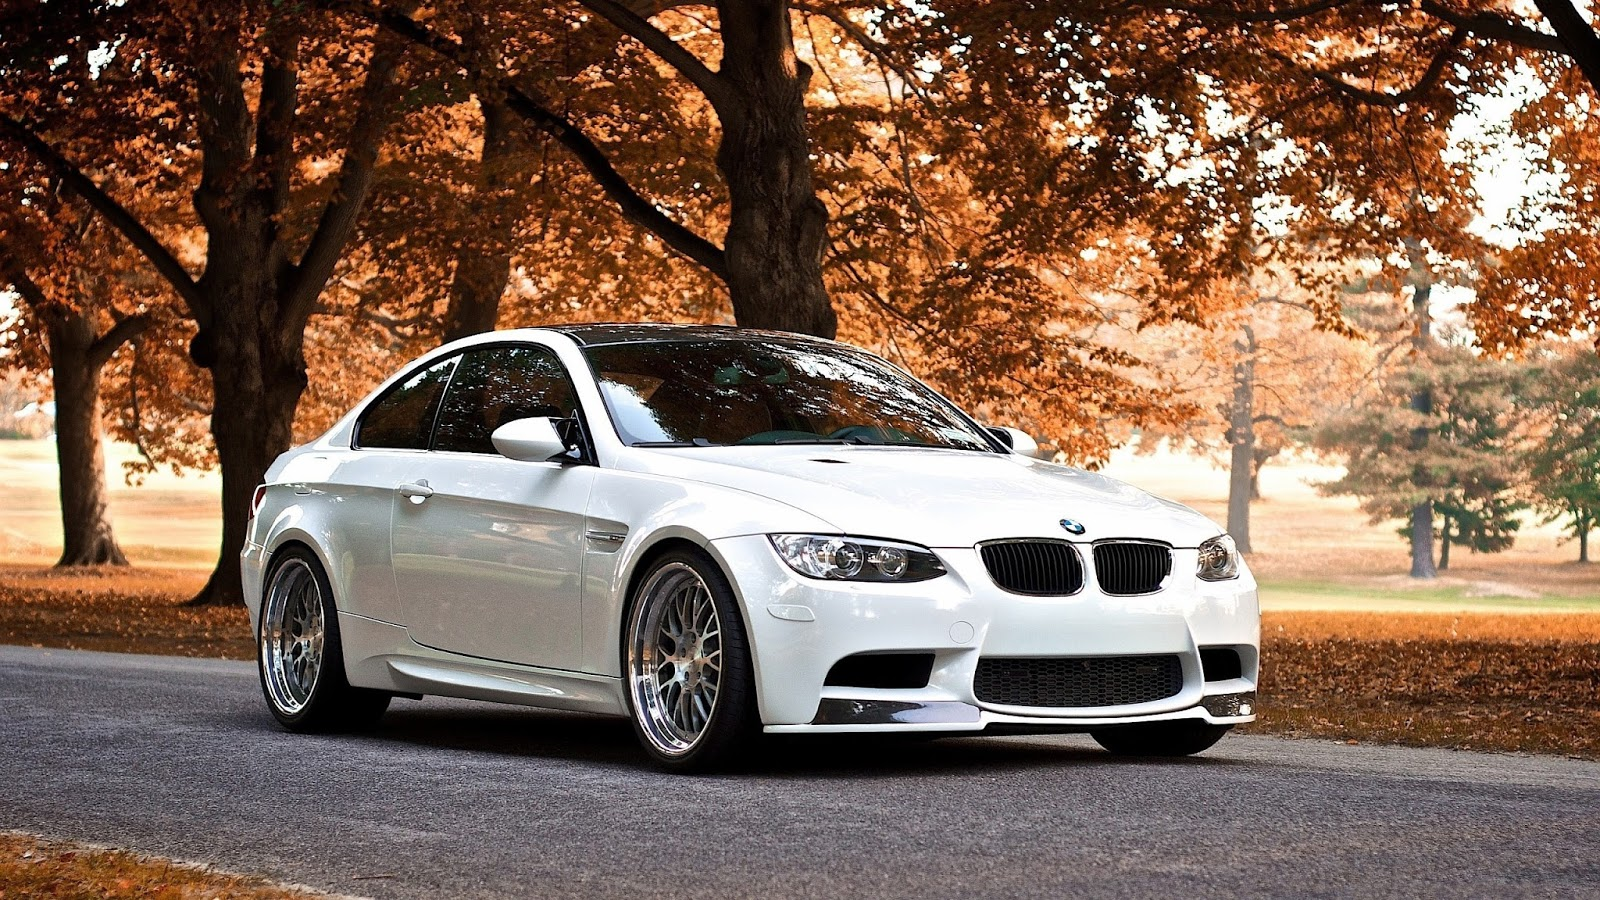 download wallpaper bmw cars - photo #35